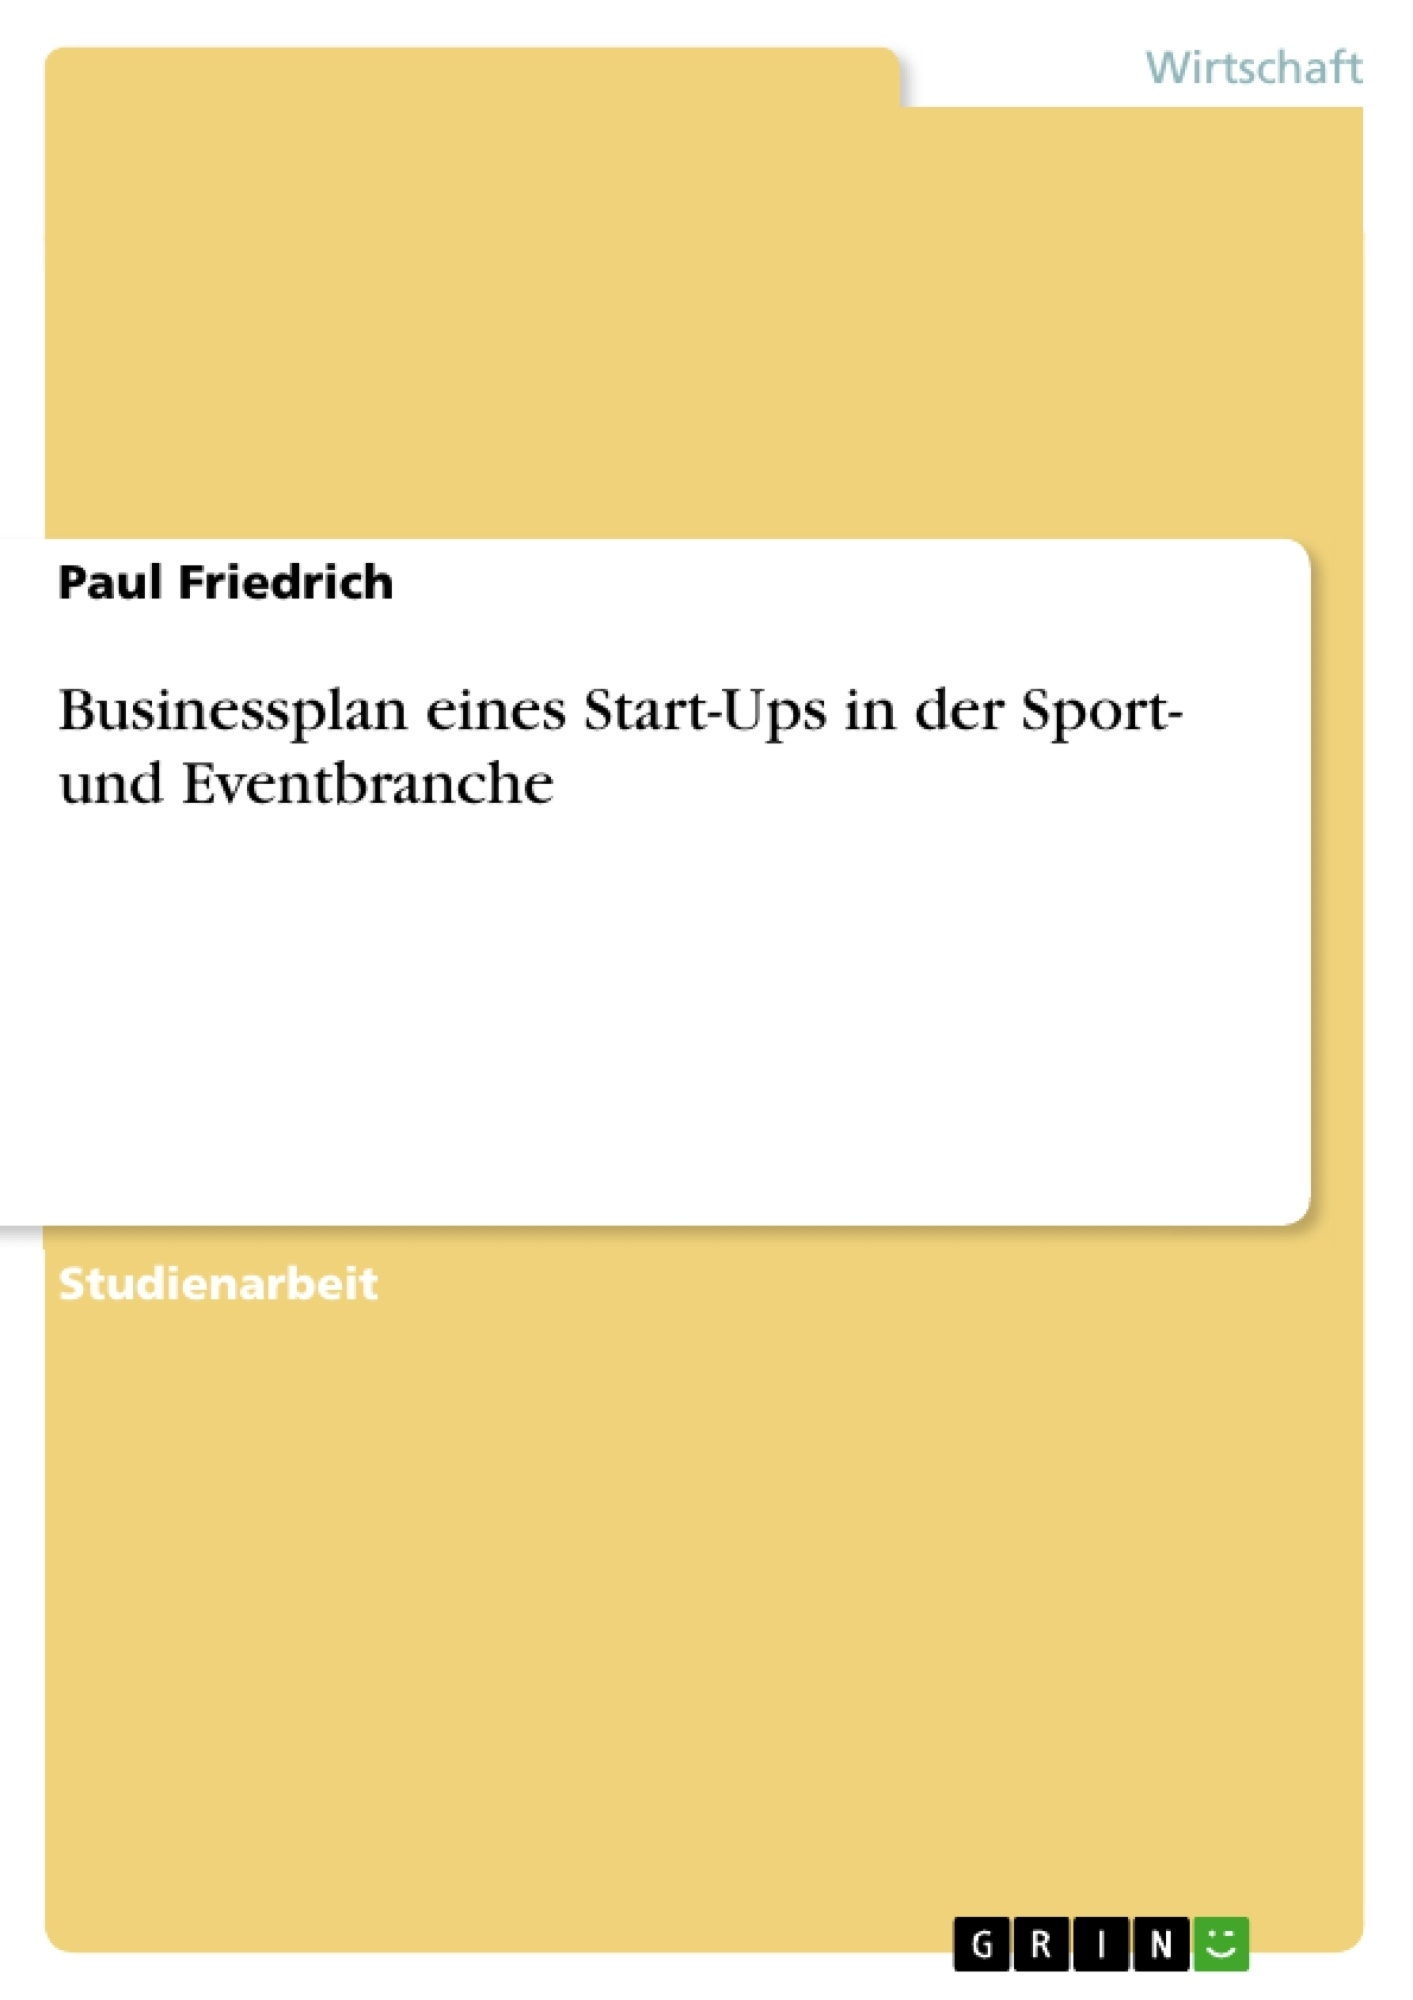 Titel: Businessplan eines Start-Ups in der Sport- und Eventbranche